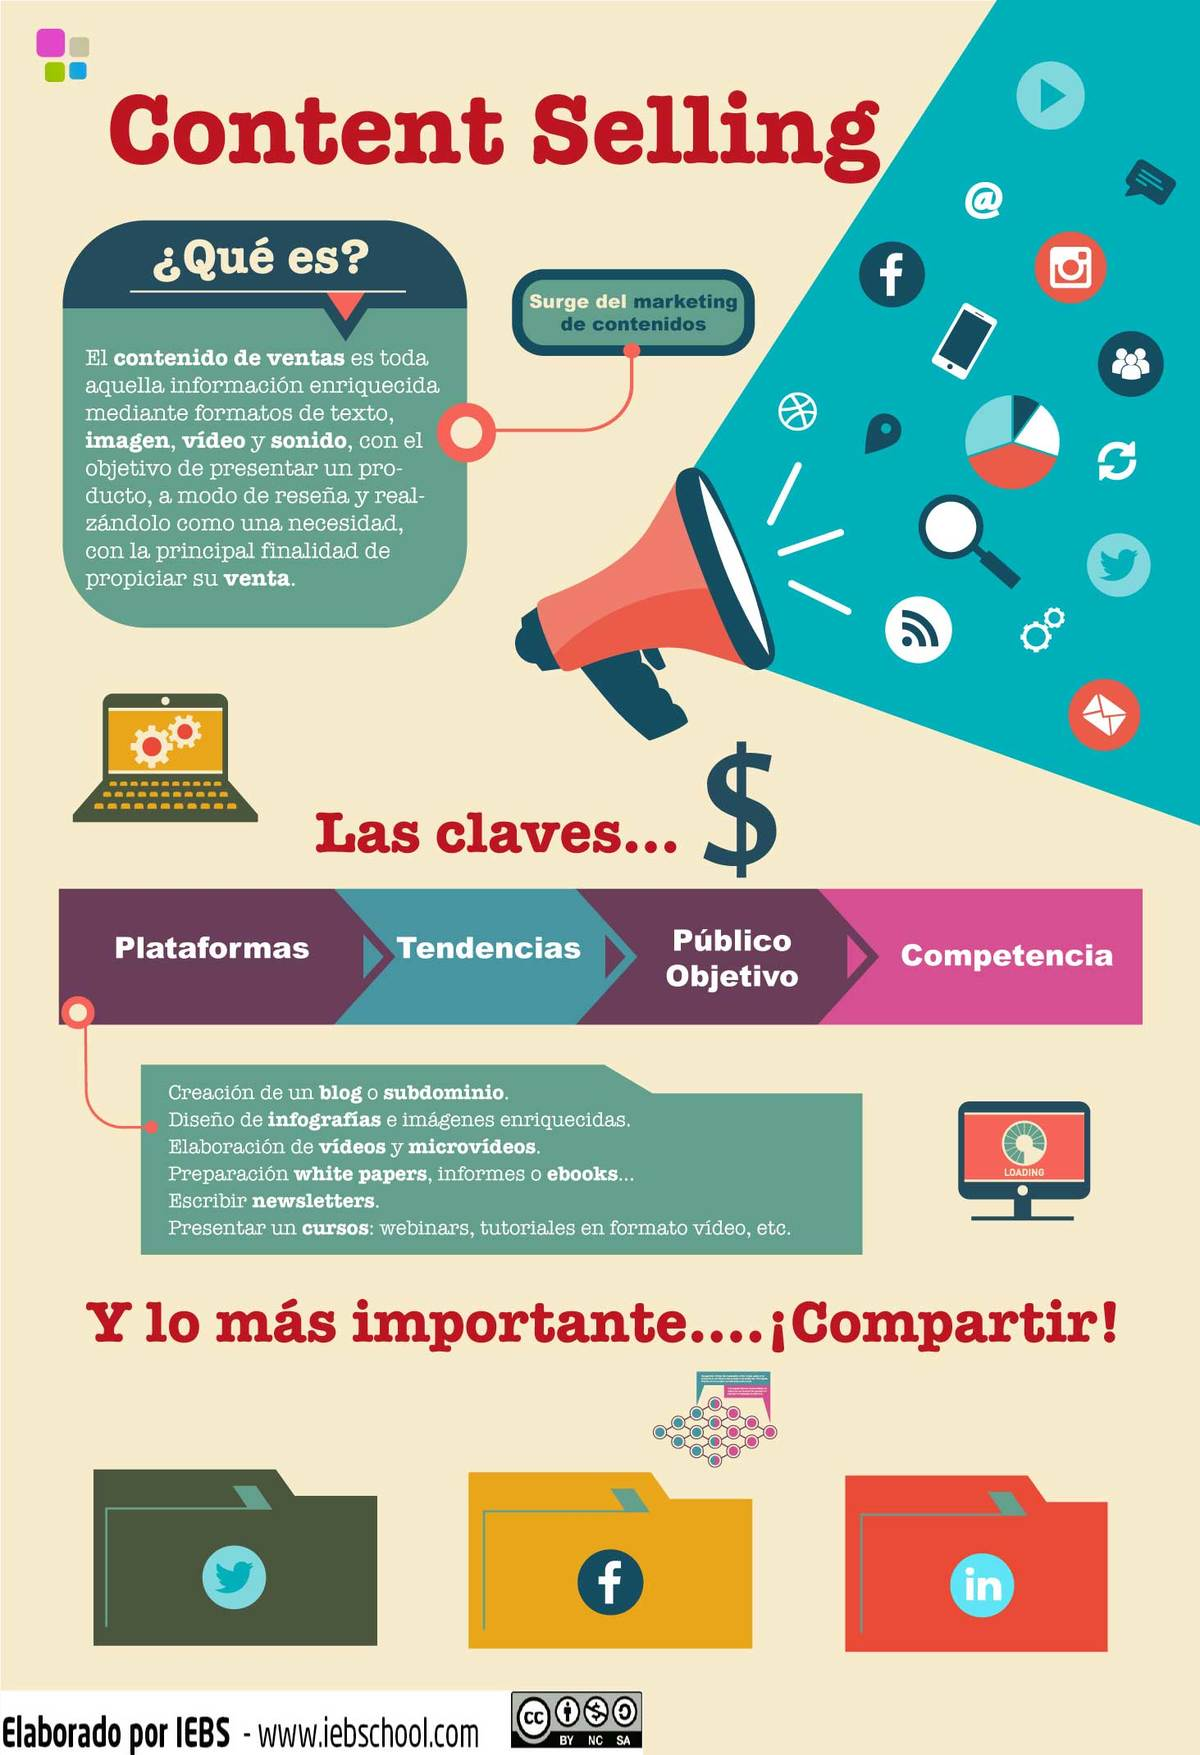 Del marketing de contenidos al 'content selling'